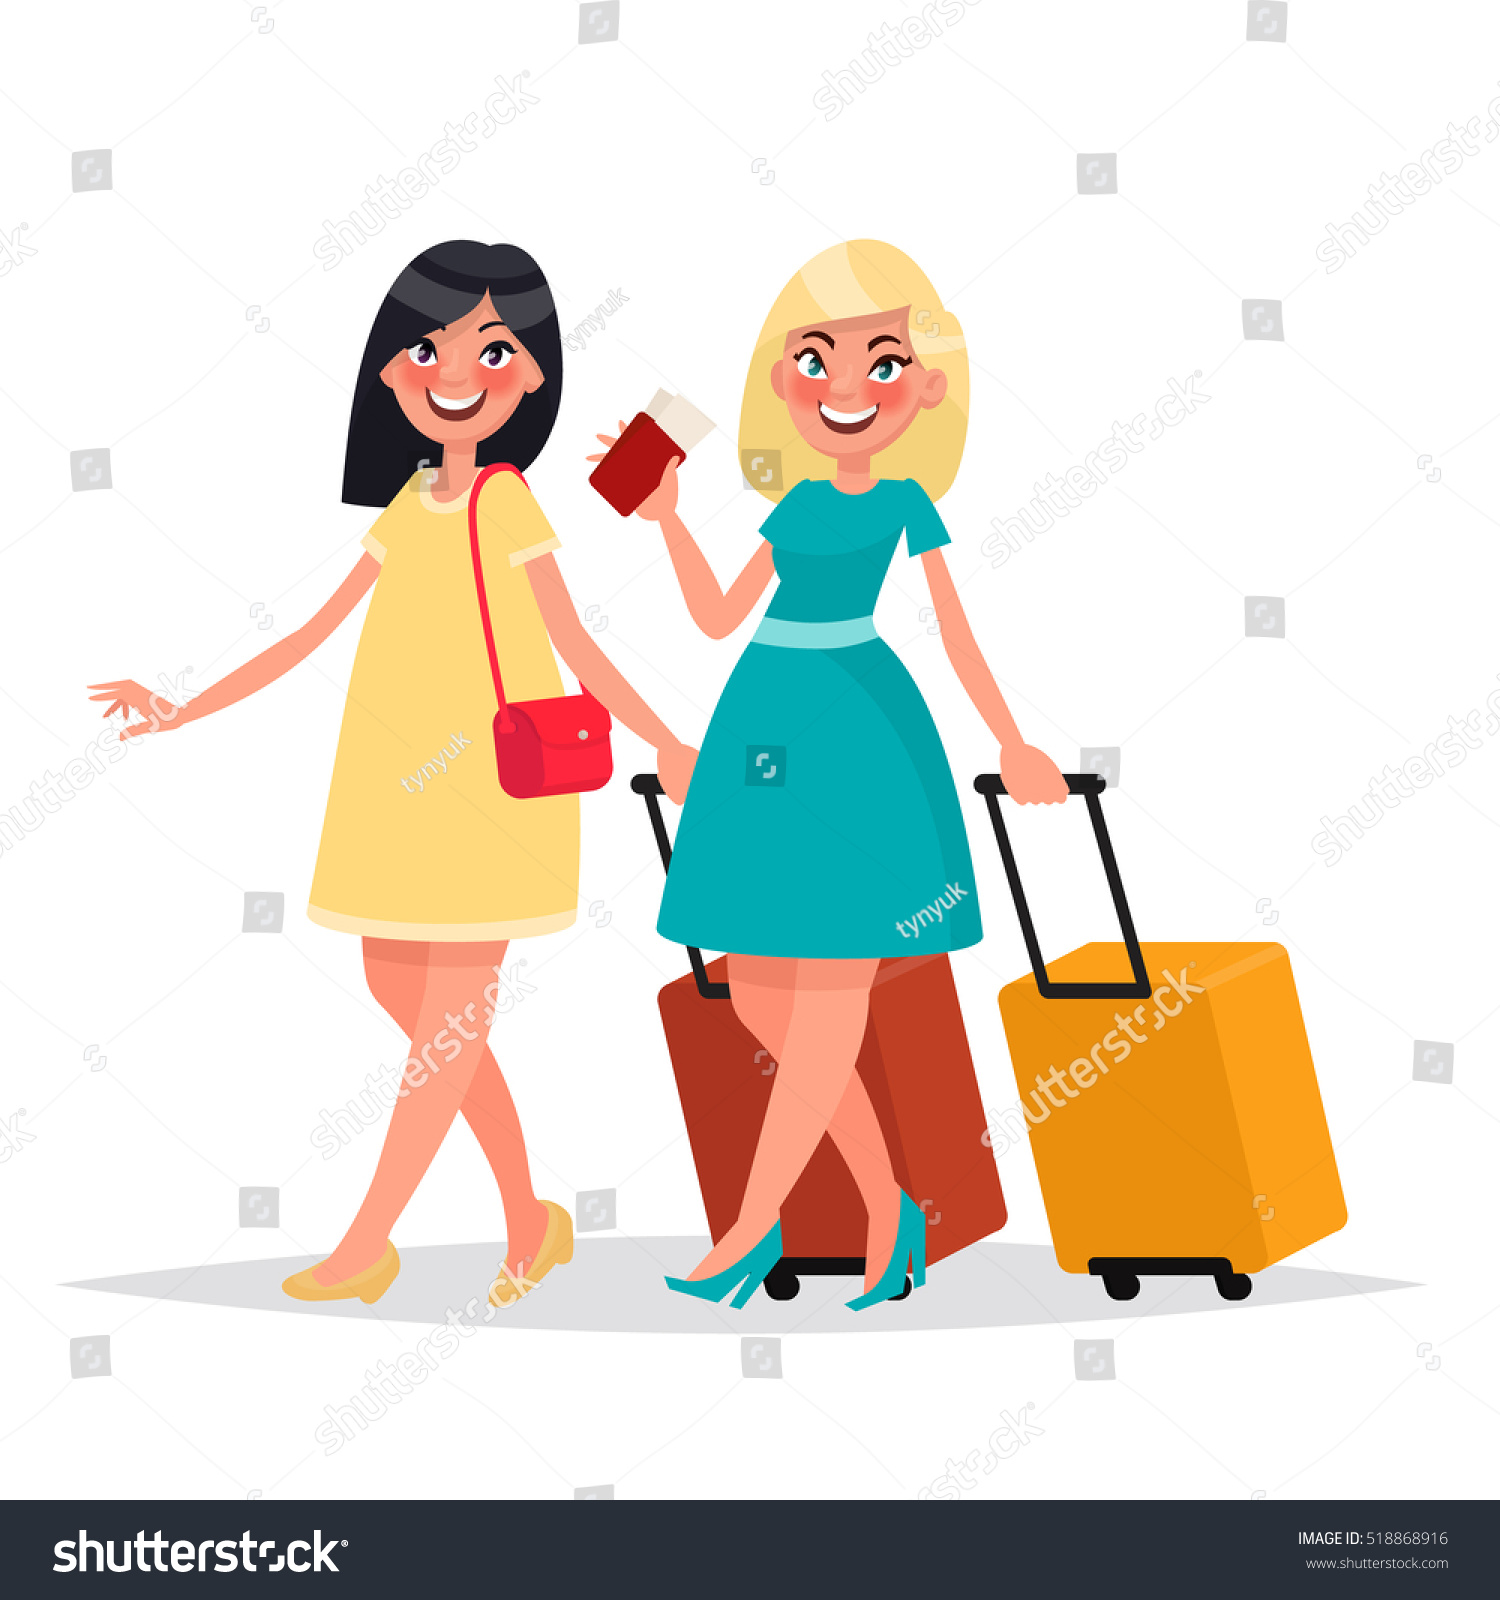 two friends women luggage gone travel stock vector free printable airplane clipart free printable airplane clipart